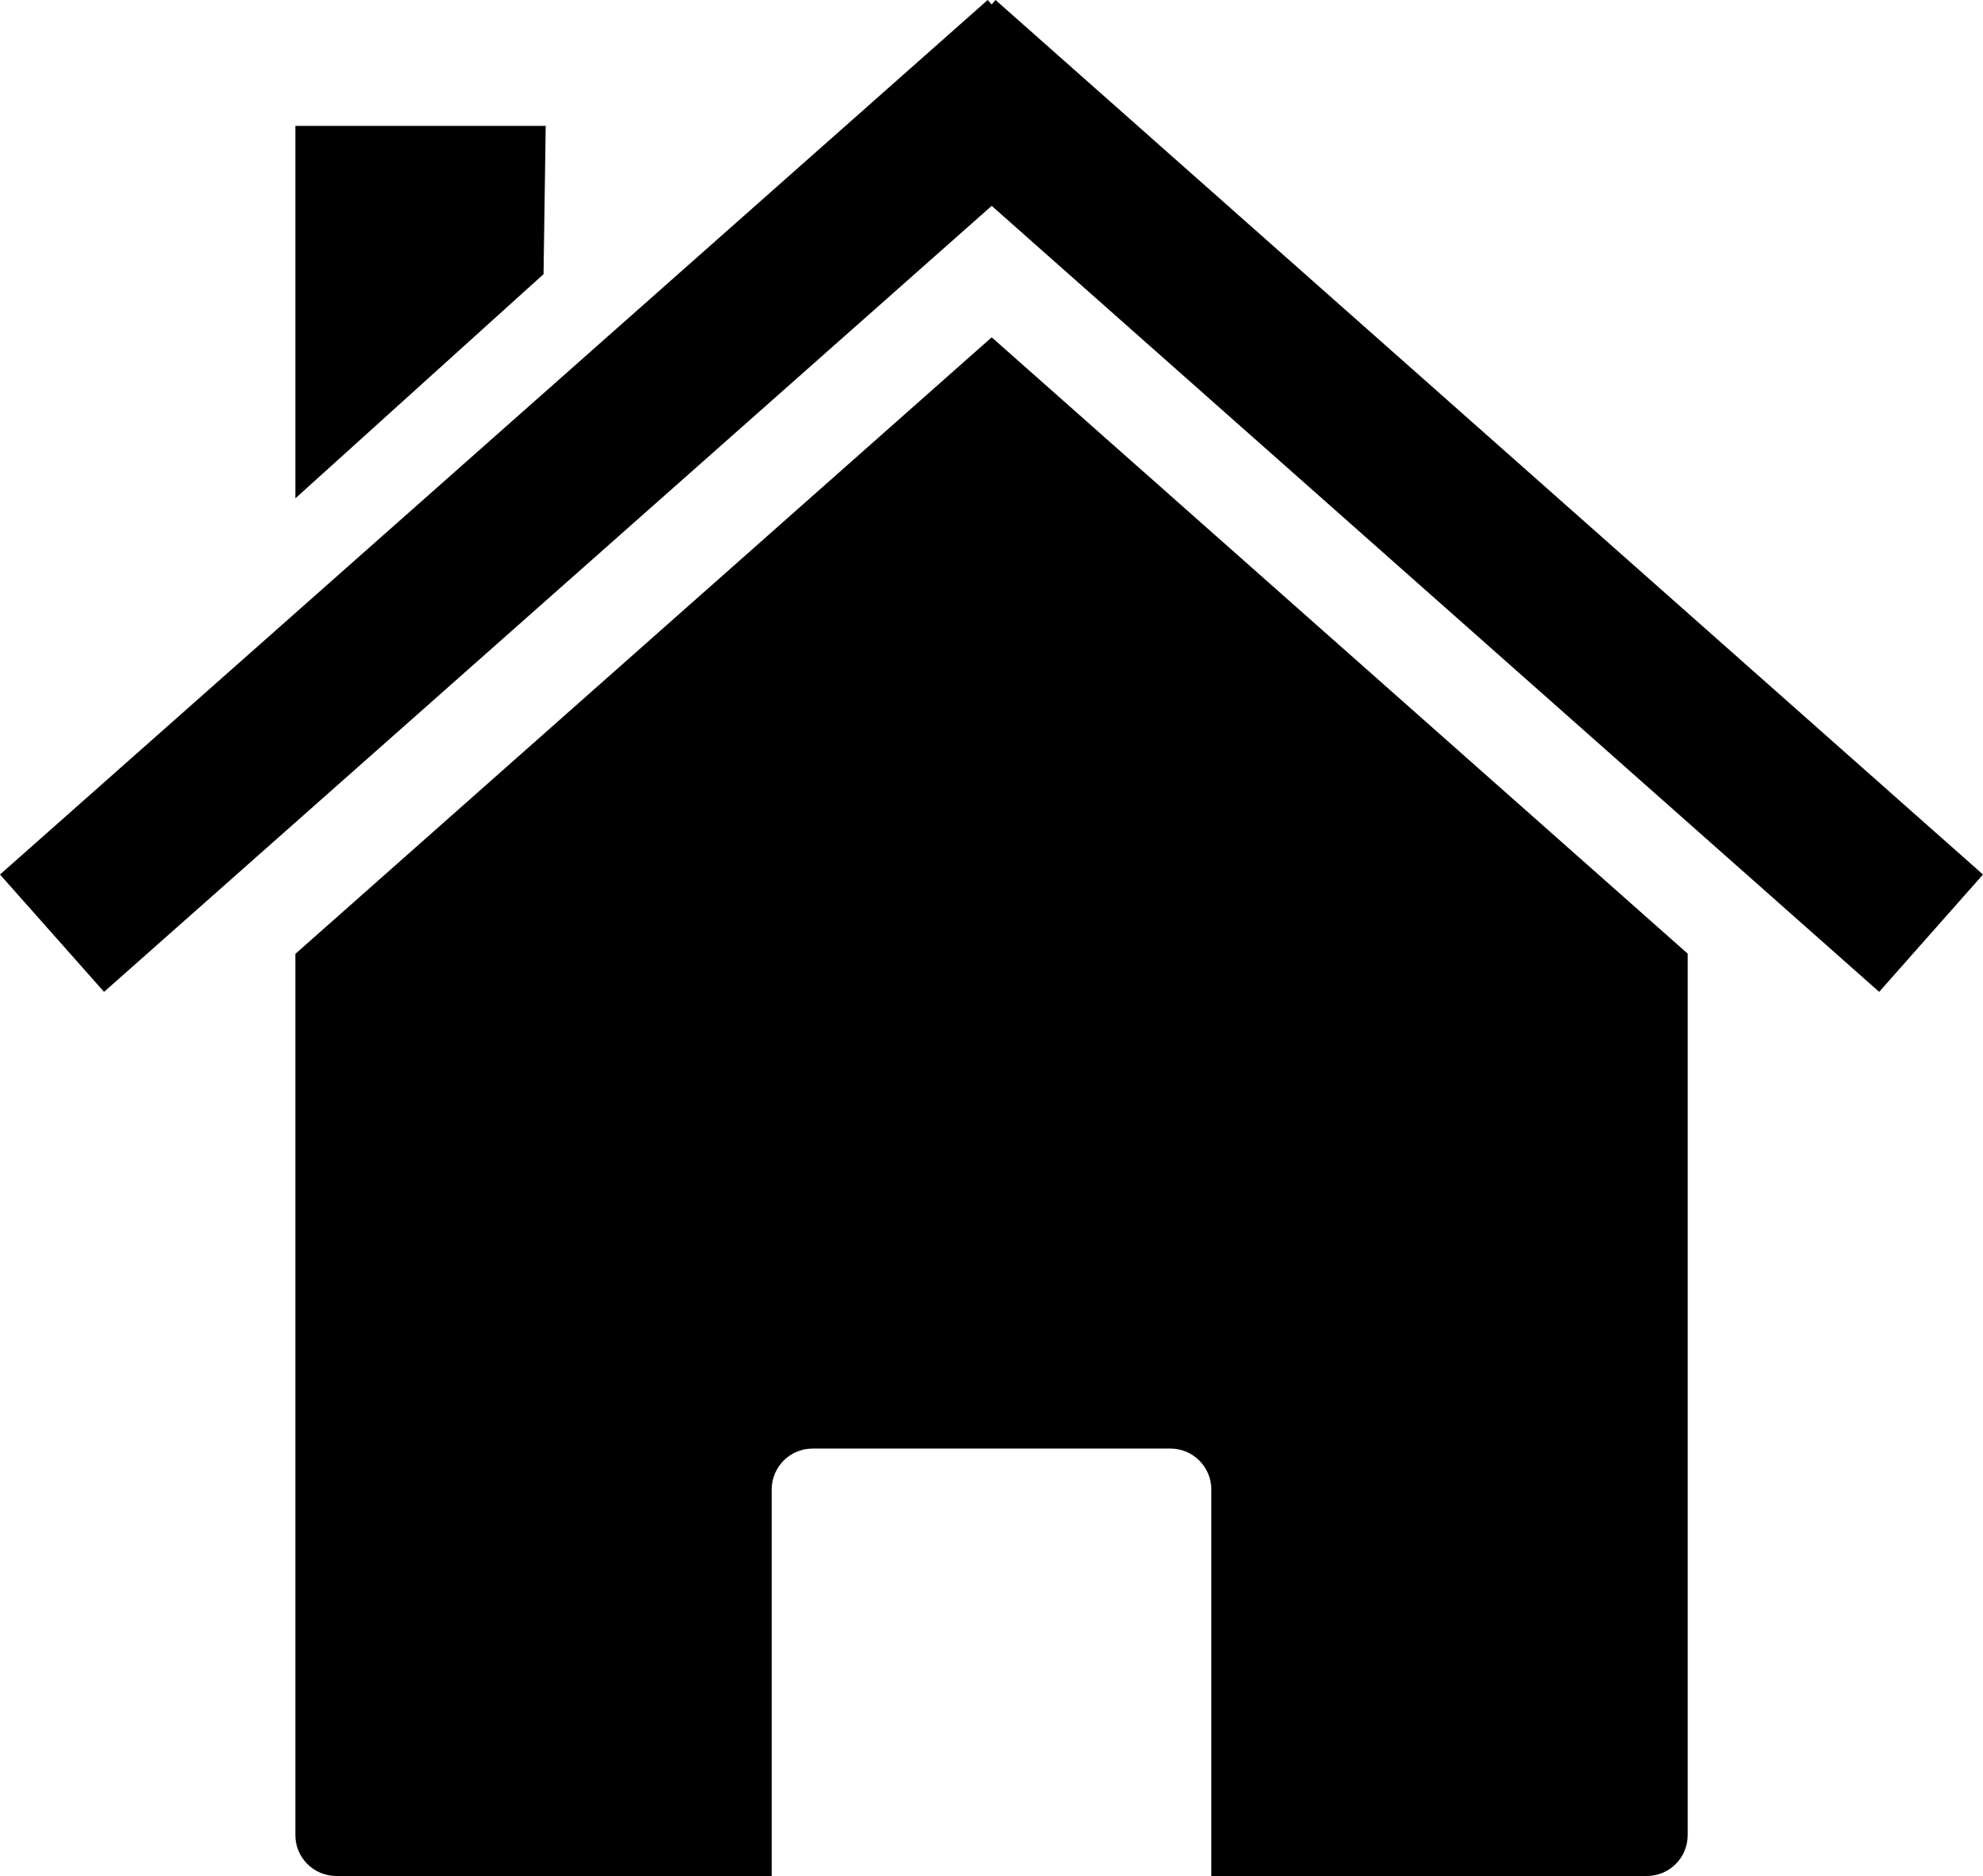 House png icon. With chimney clipart best